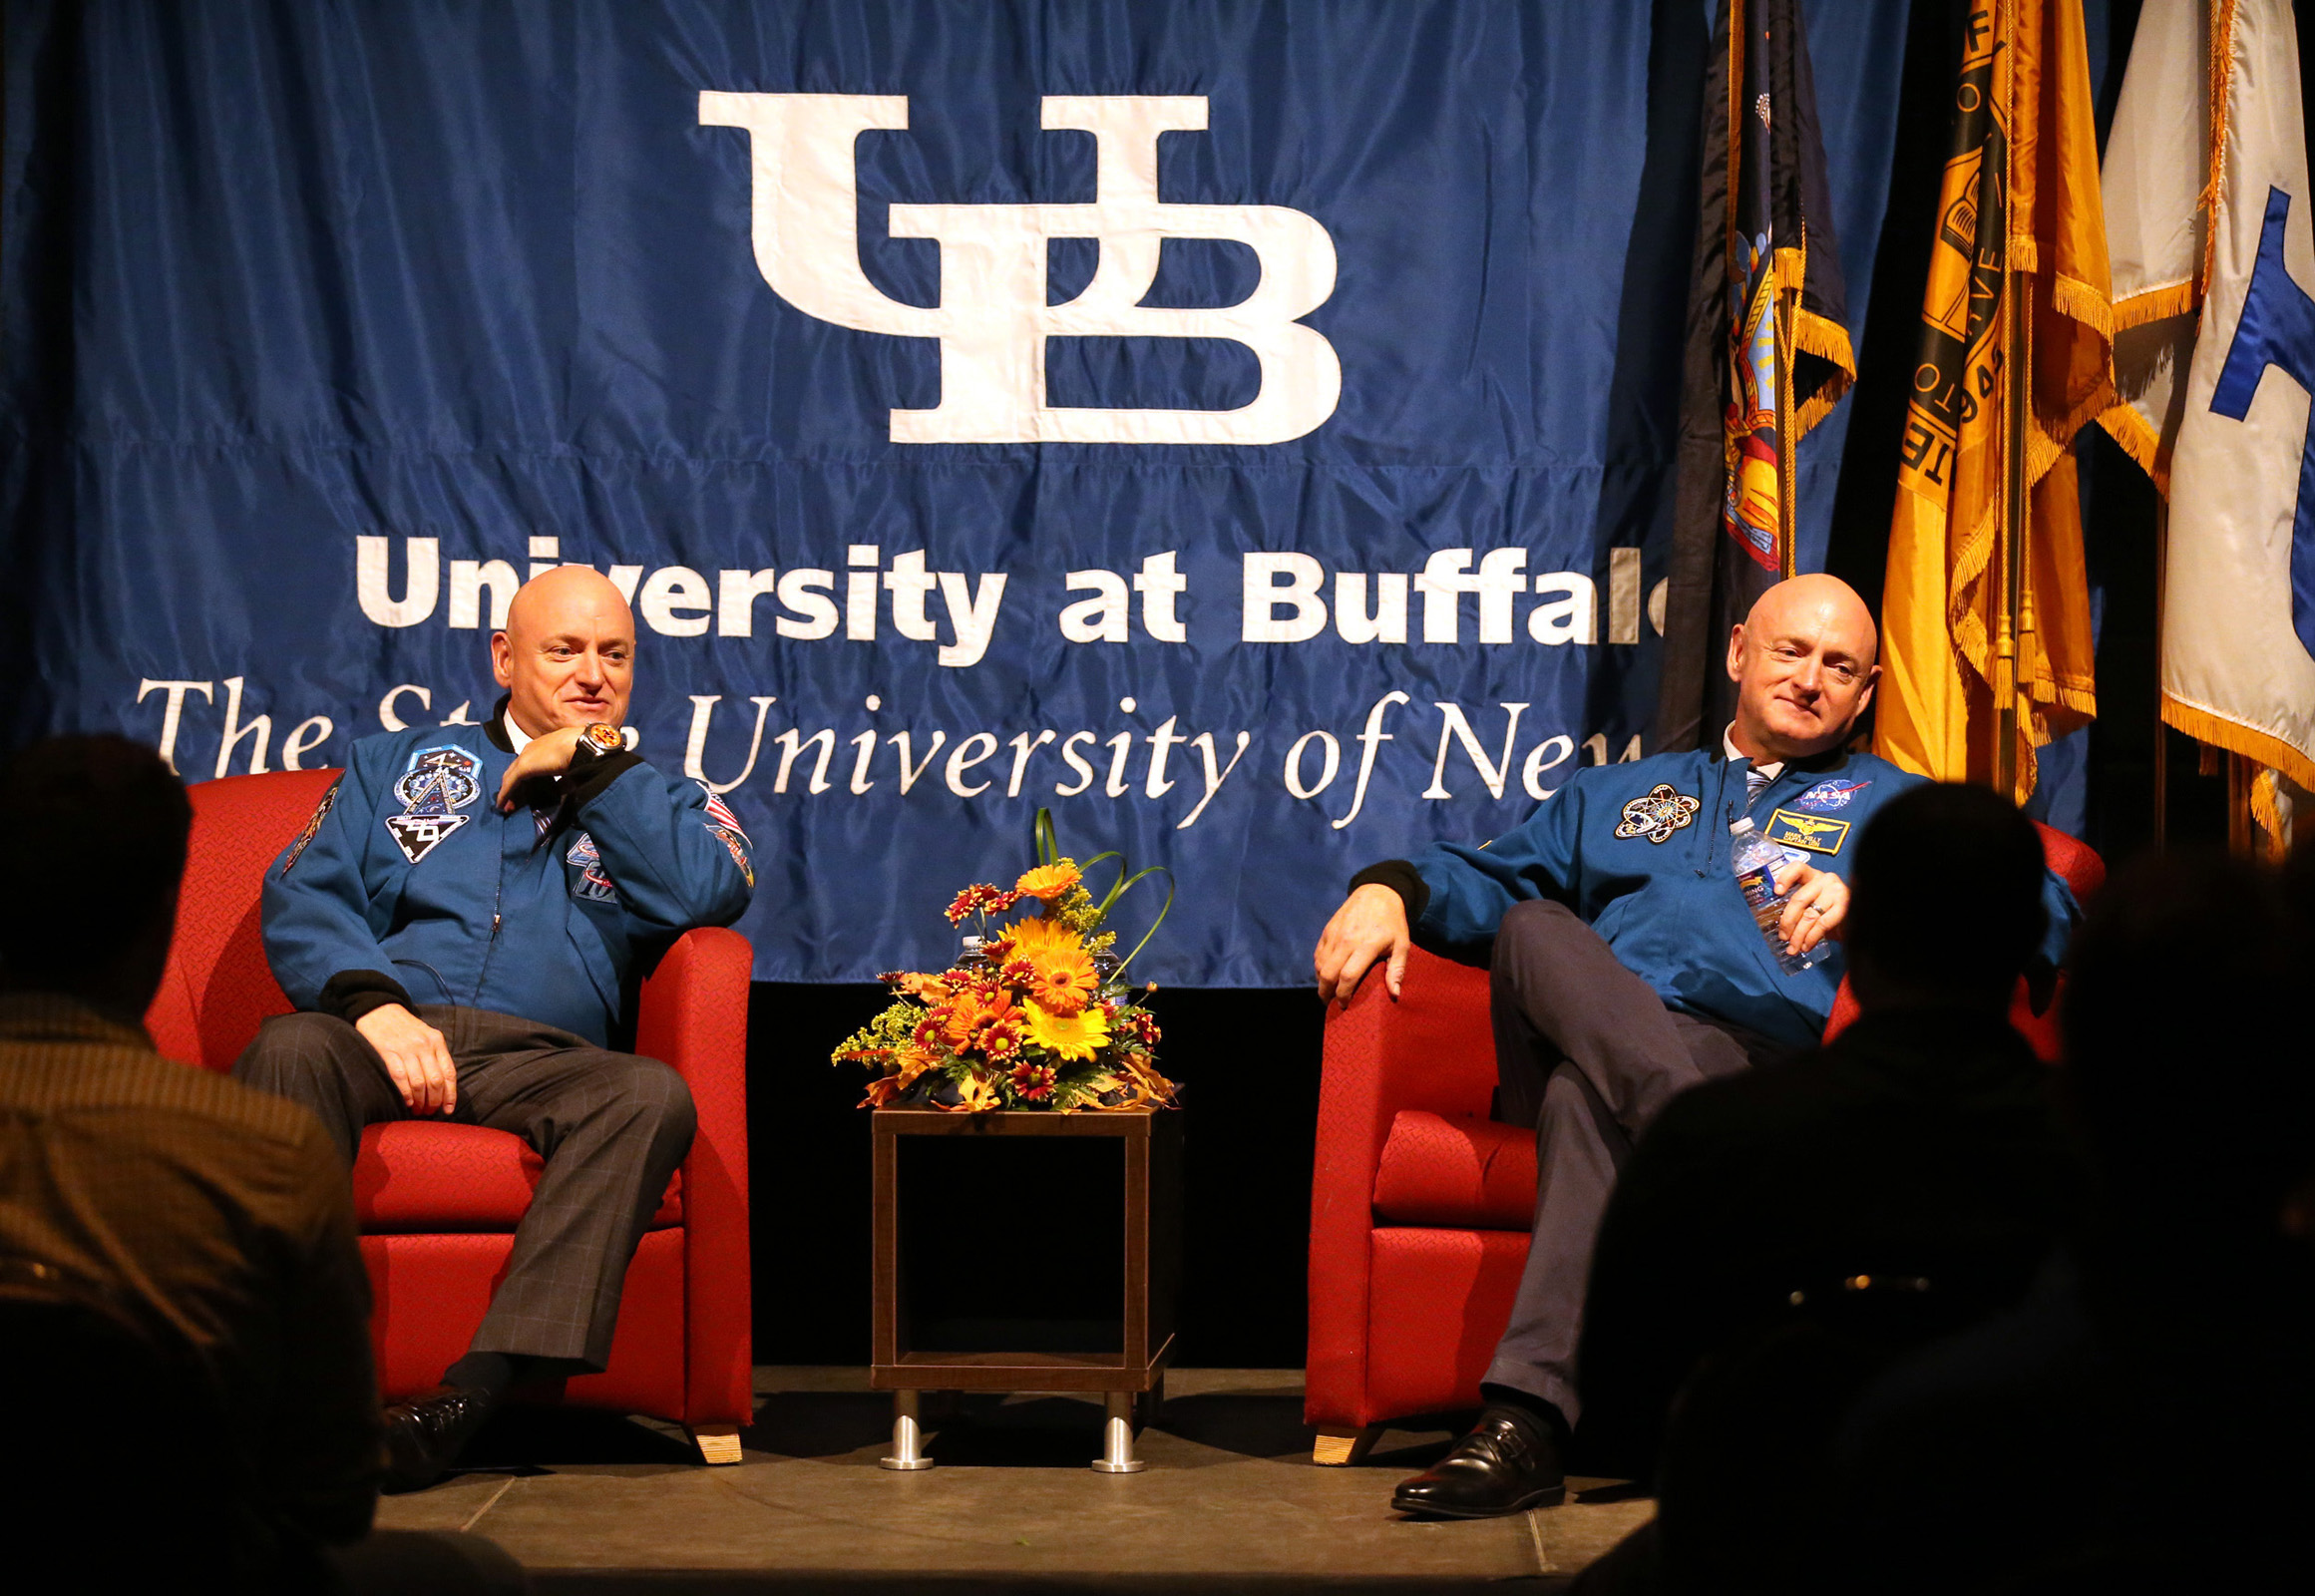 Identical brother astronauts Scott, left, and Mark Kelly meet with UB students and member so the Boys & Girls club for a Q&A session in the afternoon, Thursday, Sept. 22, 2016. They are scheduled to speak at 8 p.m. as part of the UB's Distinguished Speaker Series. (Sharon Cantillon/Buffalo News)